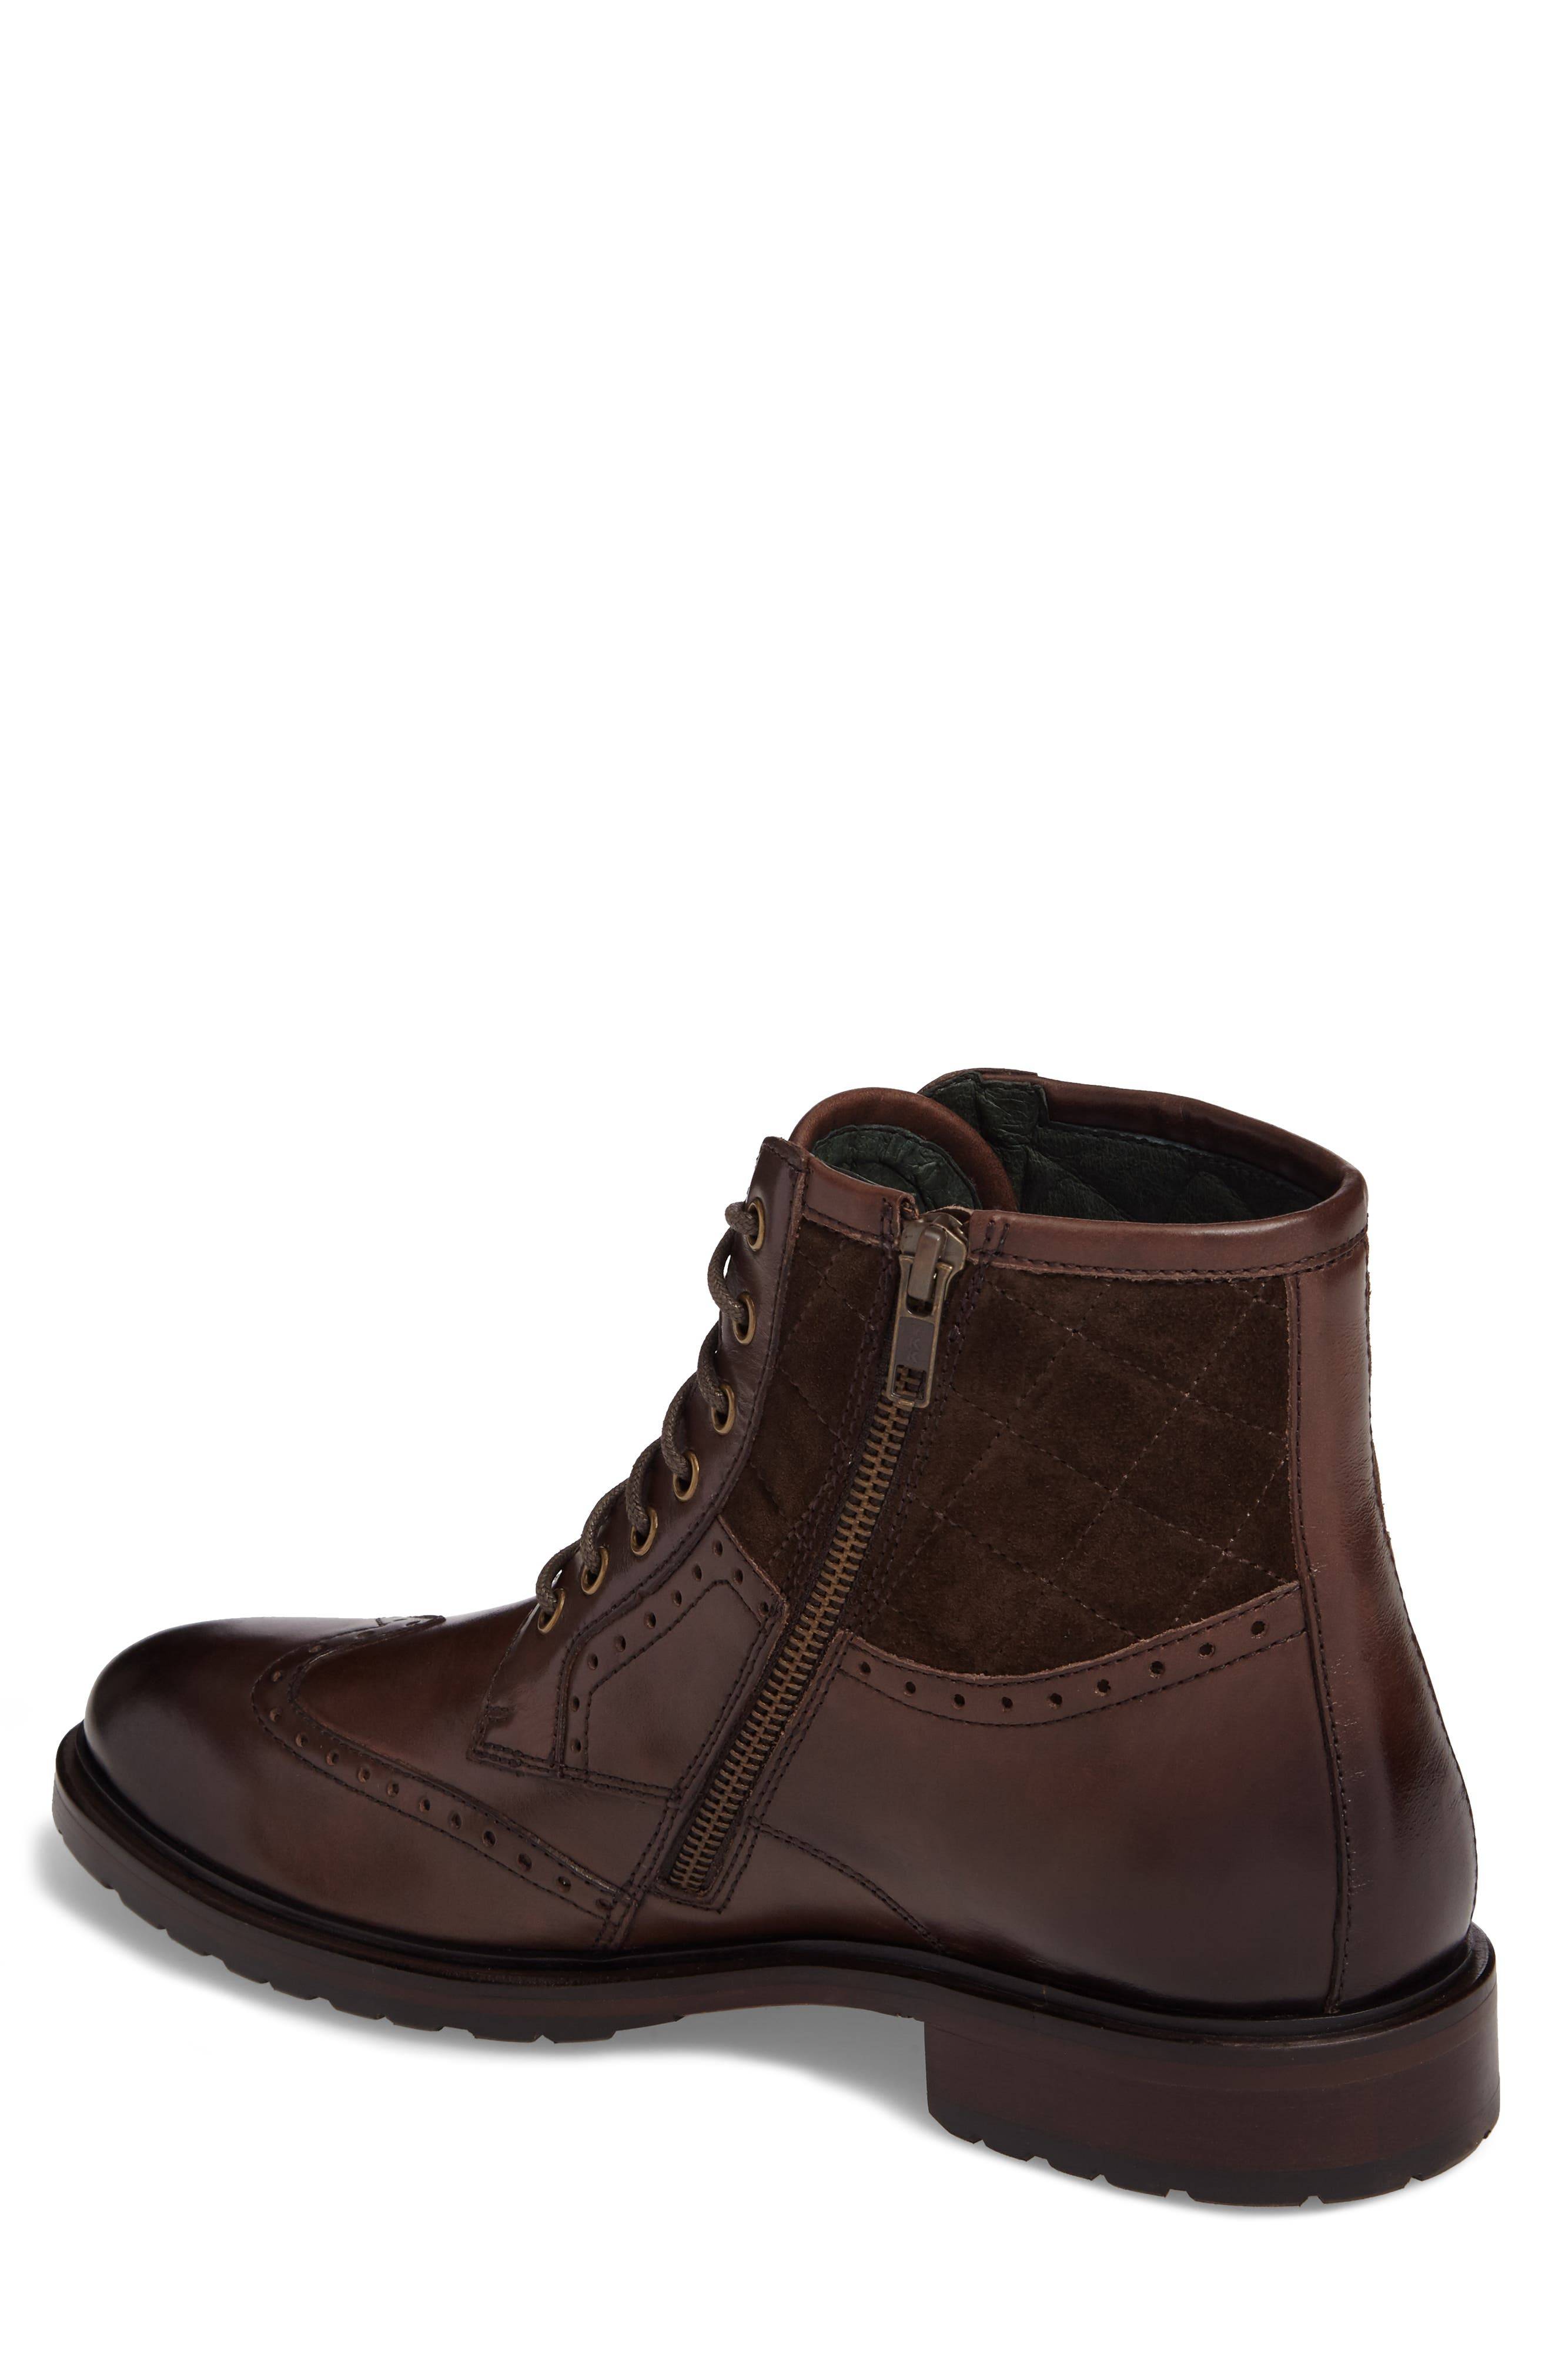 Myles Wingtip Boot,                             Alternate thumbnail 2, color,                             Mahogany Leather